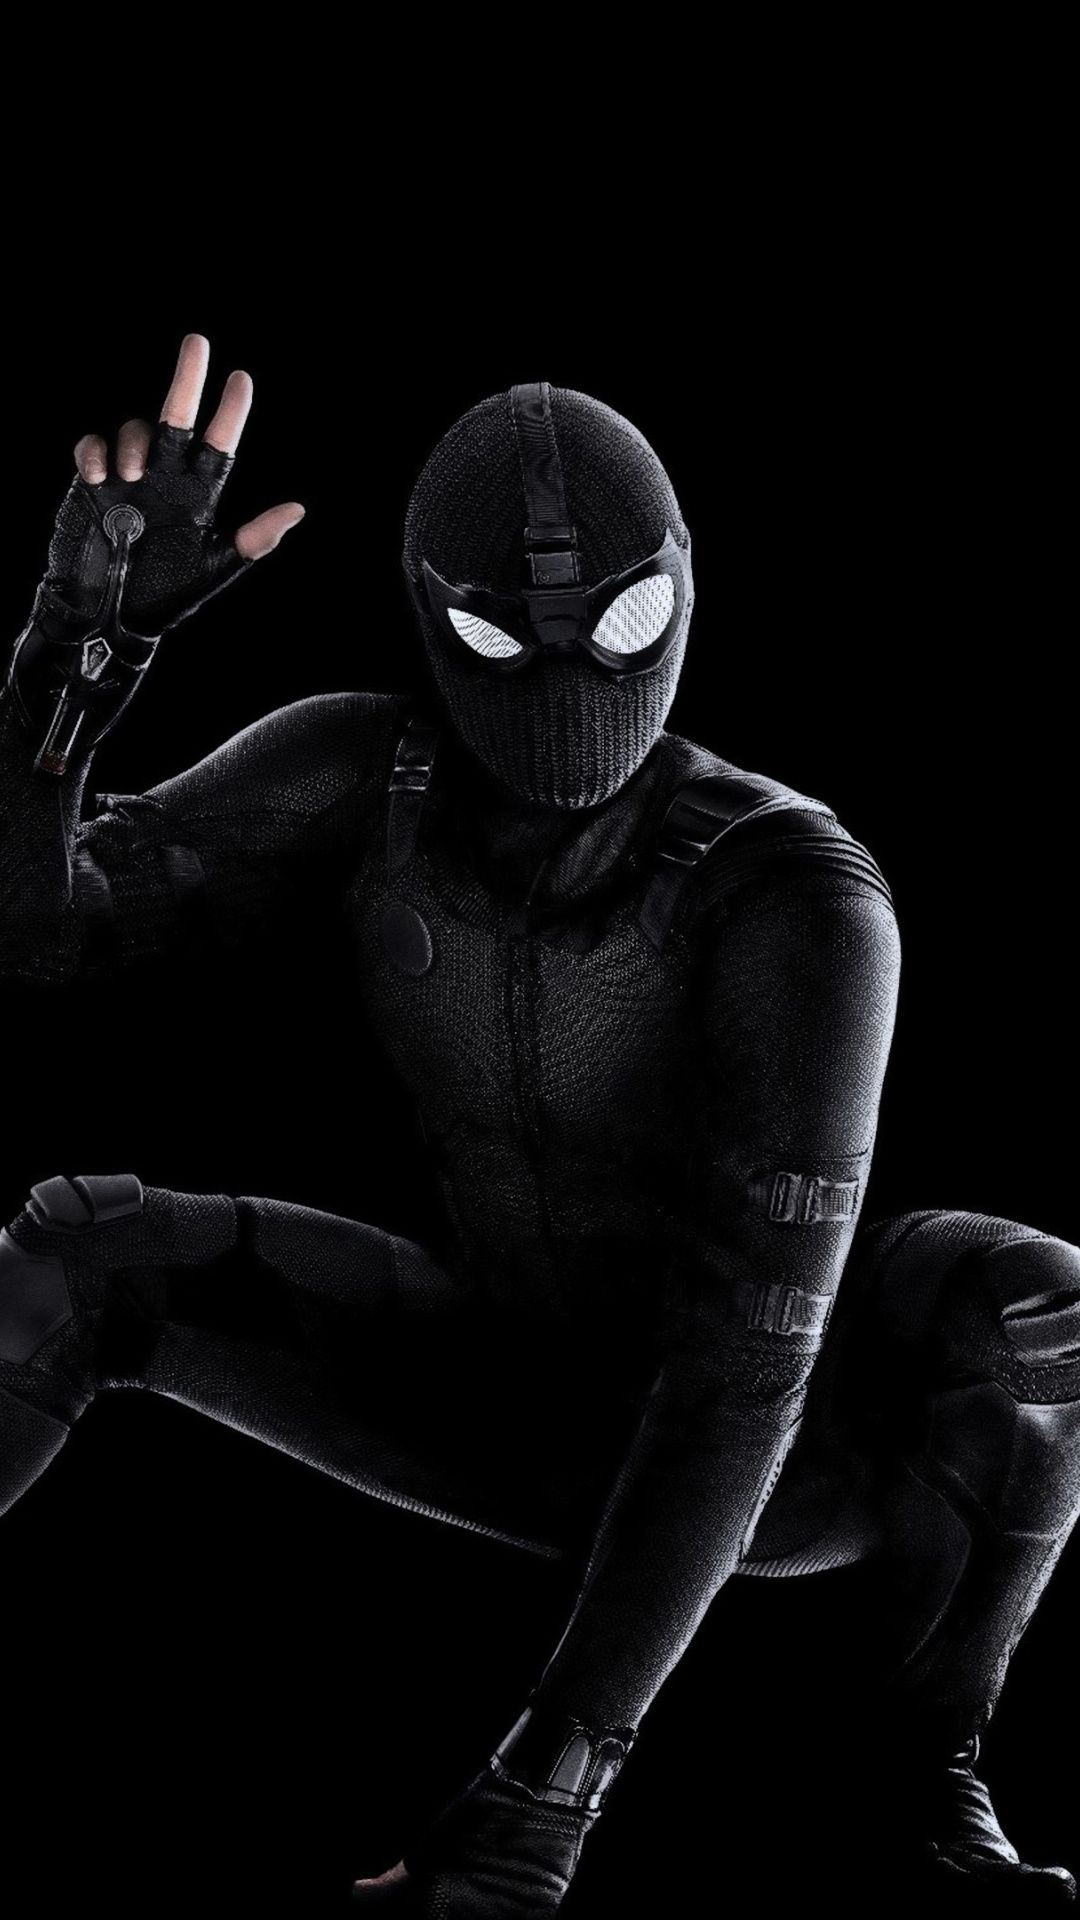 1080x1920 Spider Man Far From Home Black Suit Wallpaper Spiderman Marvel Superheroes Spiderman Suits